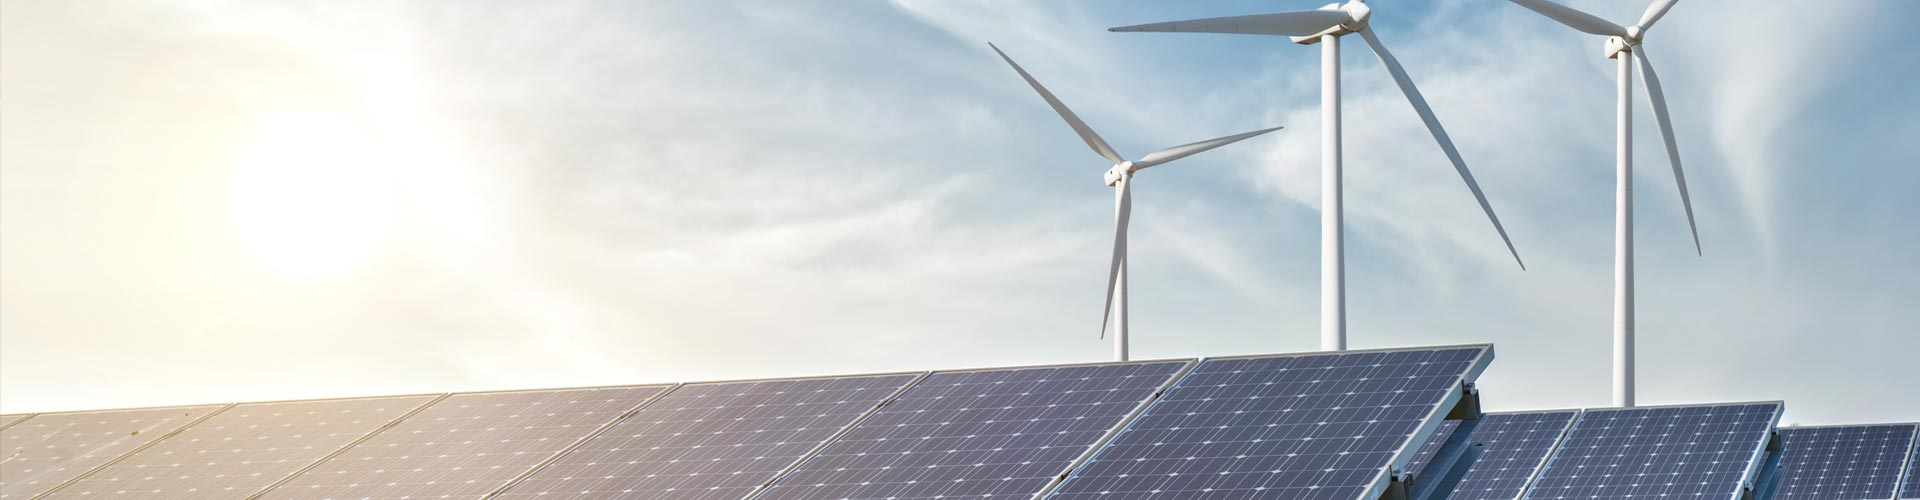 Wind and Solar Power - MCI Transformer components can be found in magnetics for EV chargers, solar and wind power systems, and other green energy initiatives.